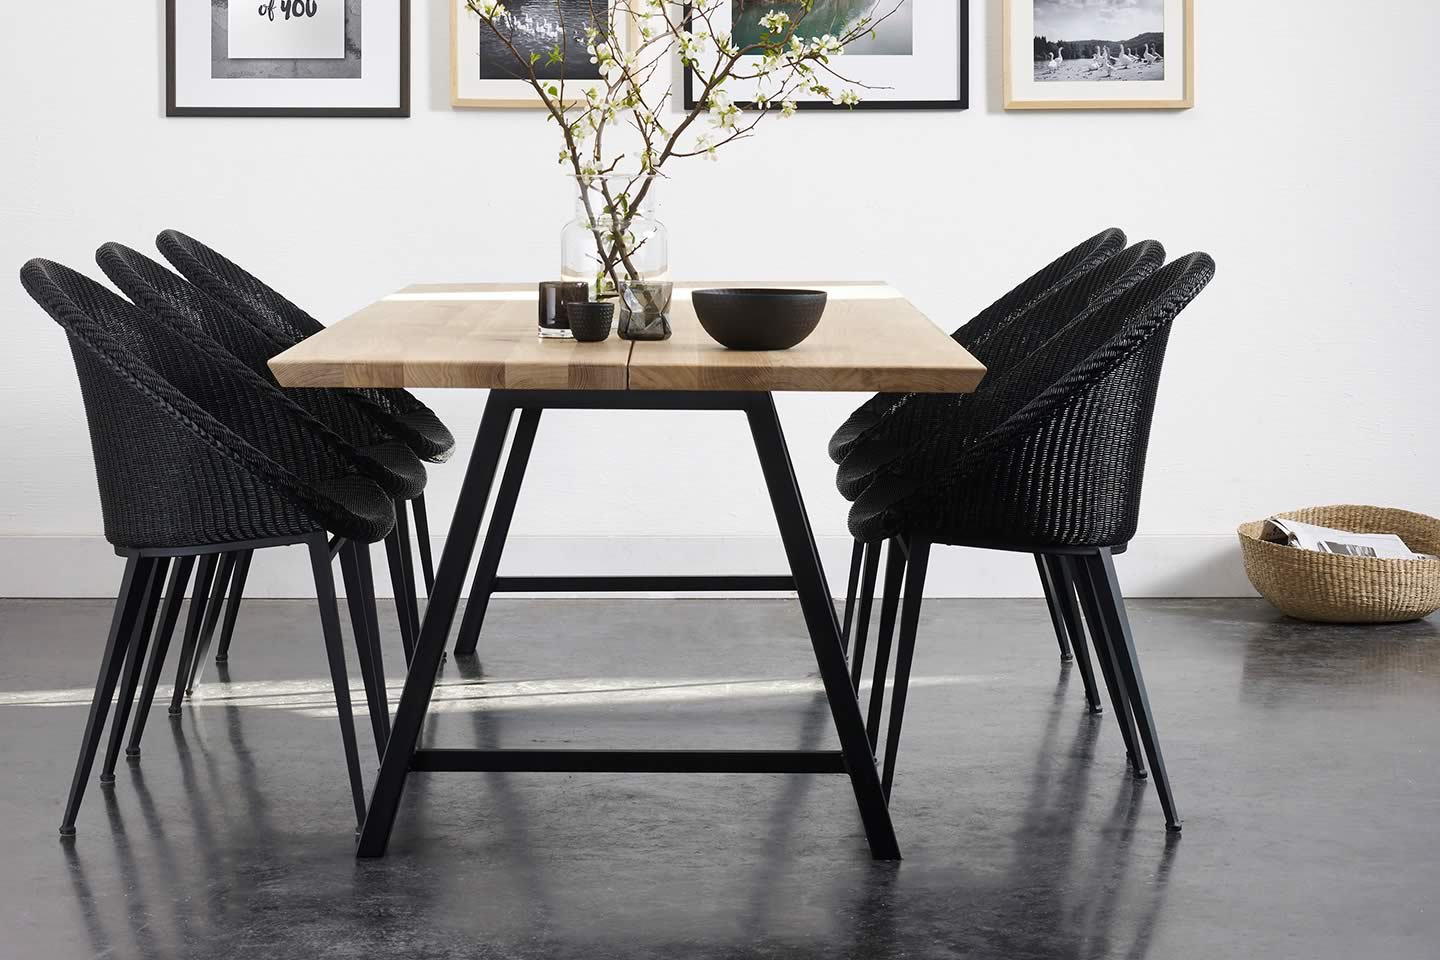 Dining furniture featherston interiors hobart tasmania